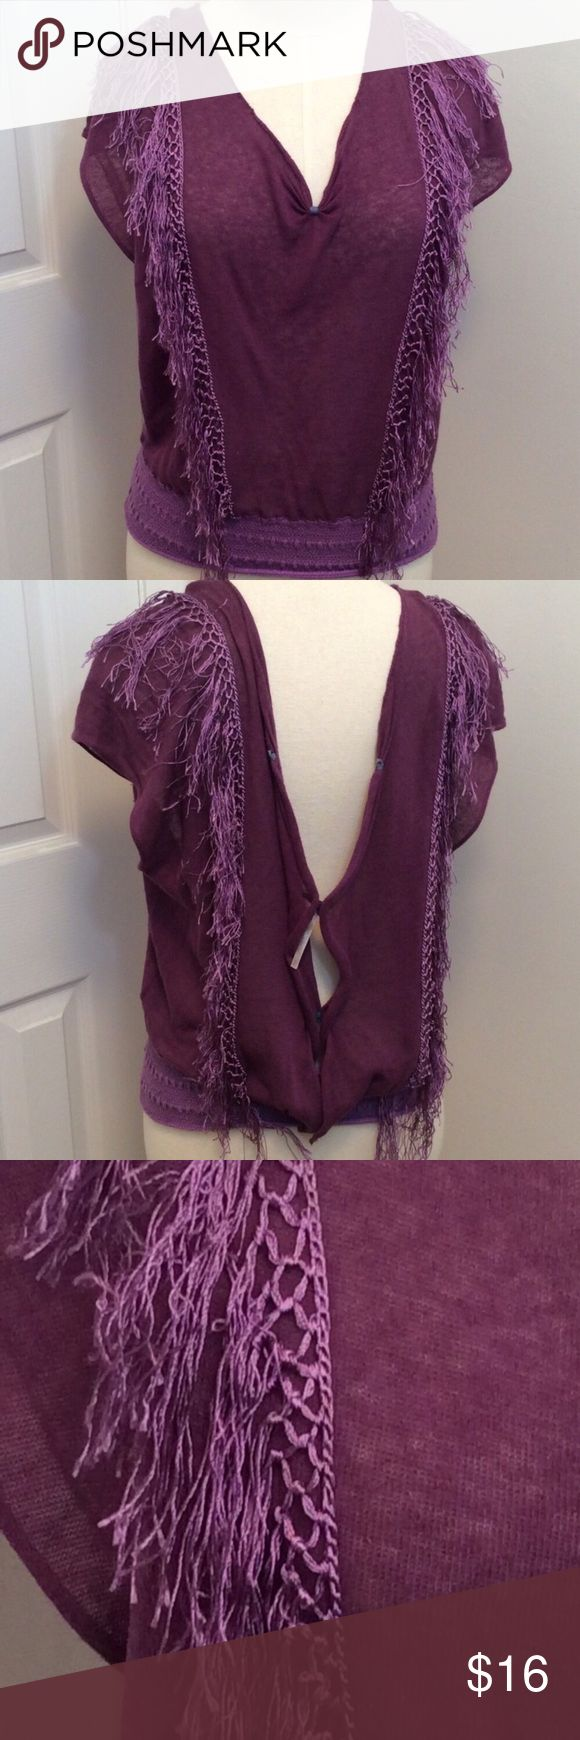 Free People  purple crochet V neck fringe tank top Free People  purple crochet V neck fringe tank top. Elastic waist pincher, size S/P GUC questions??? Please ask Free People Tops Blouses